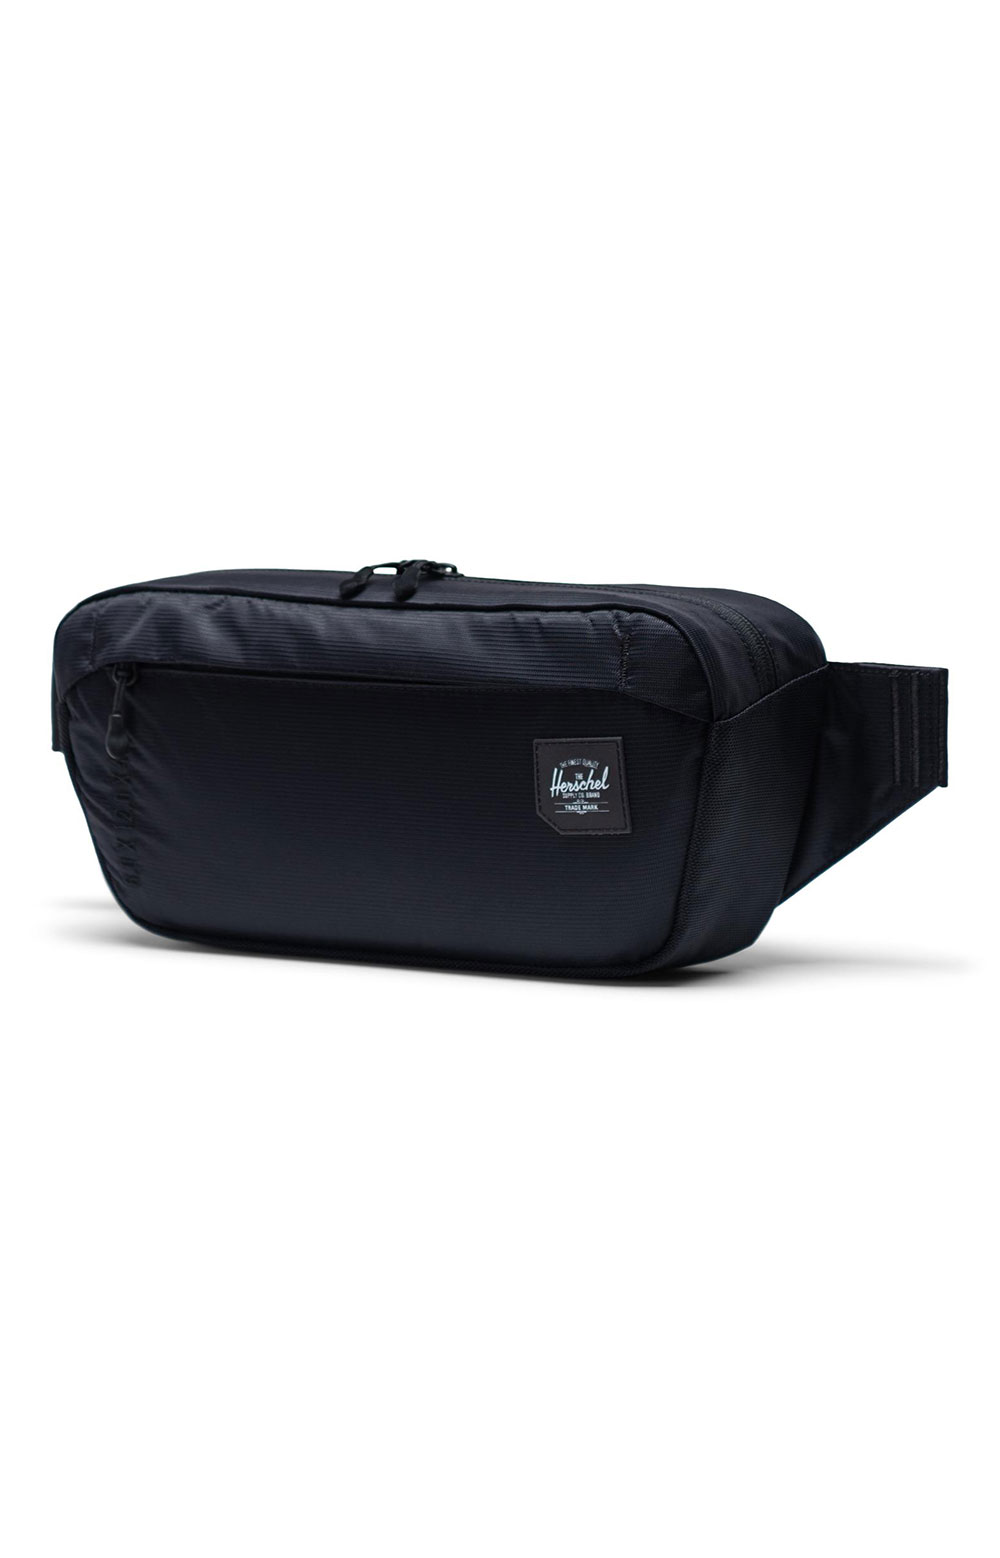 Tour Hip Pack Medium - Black  2